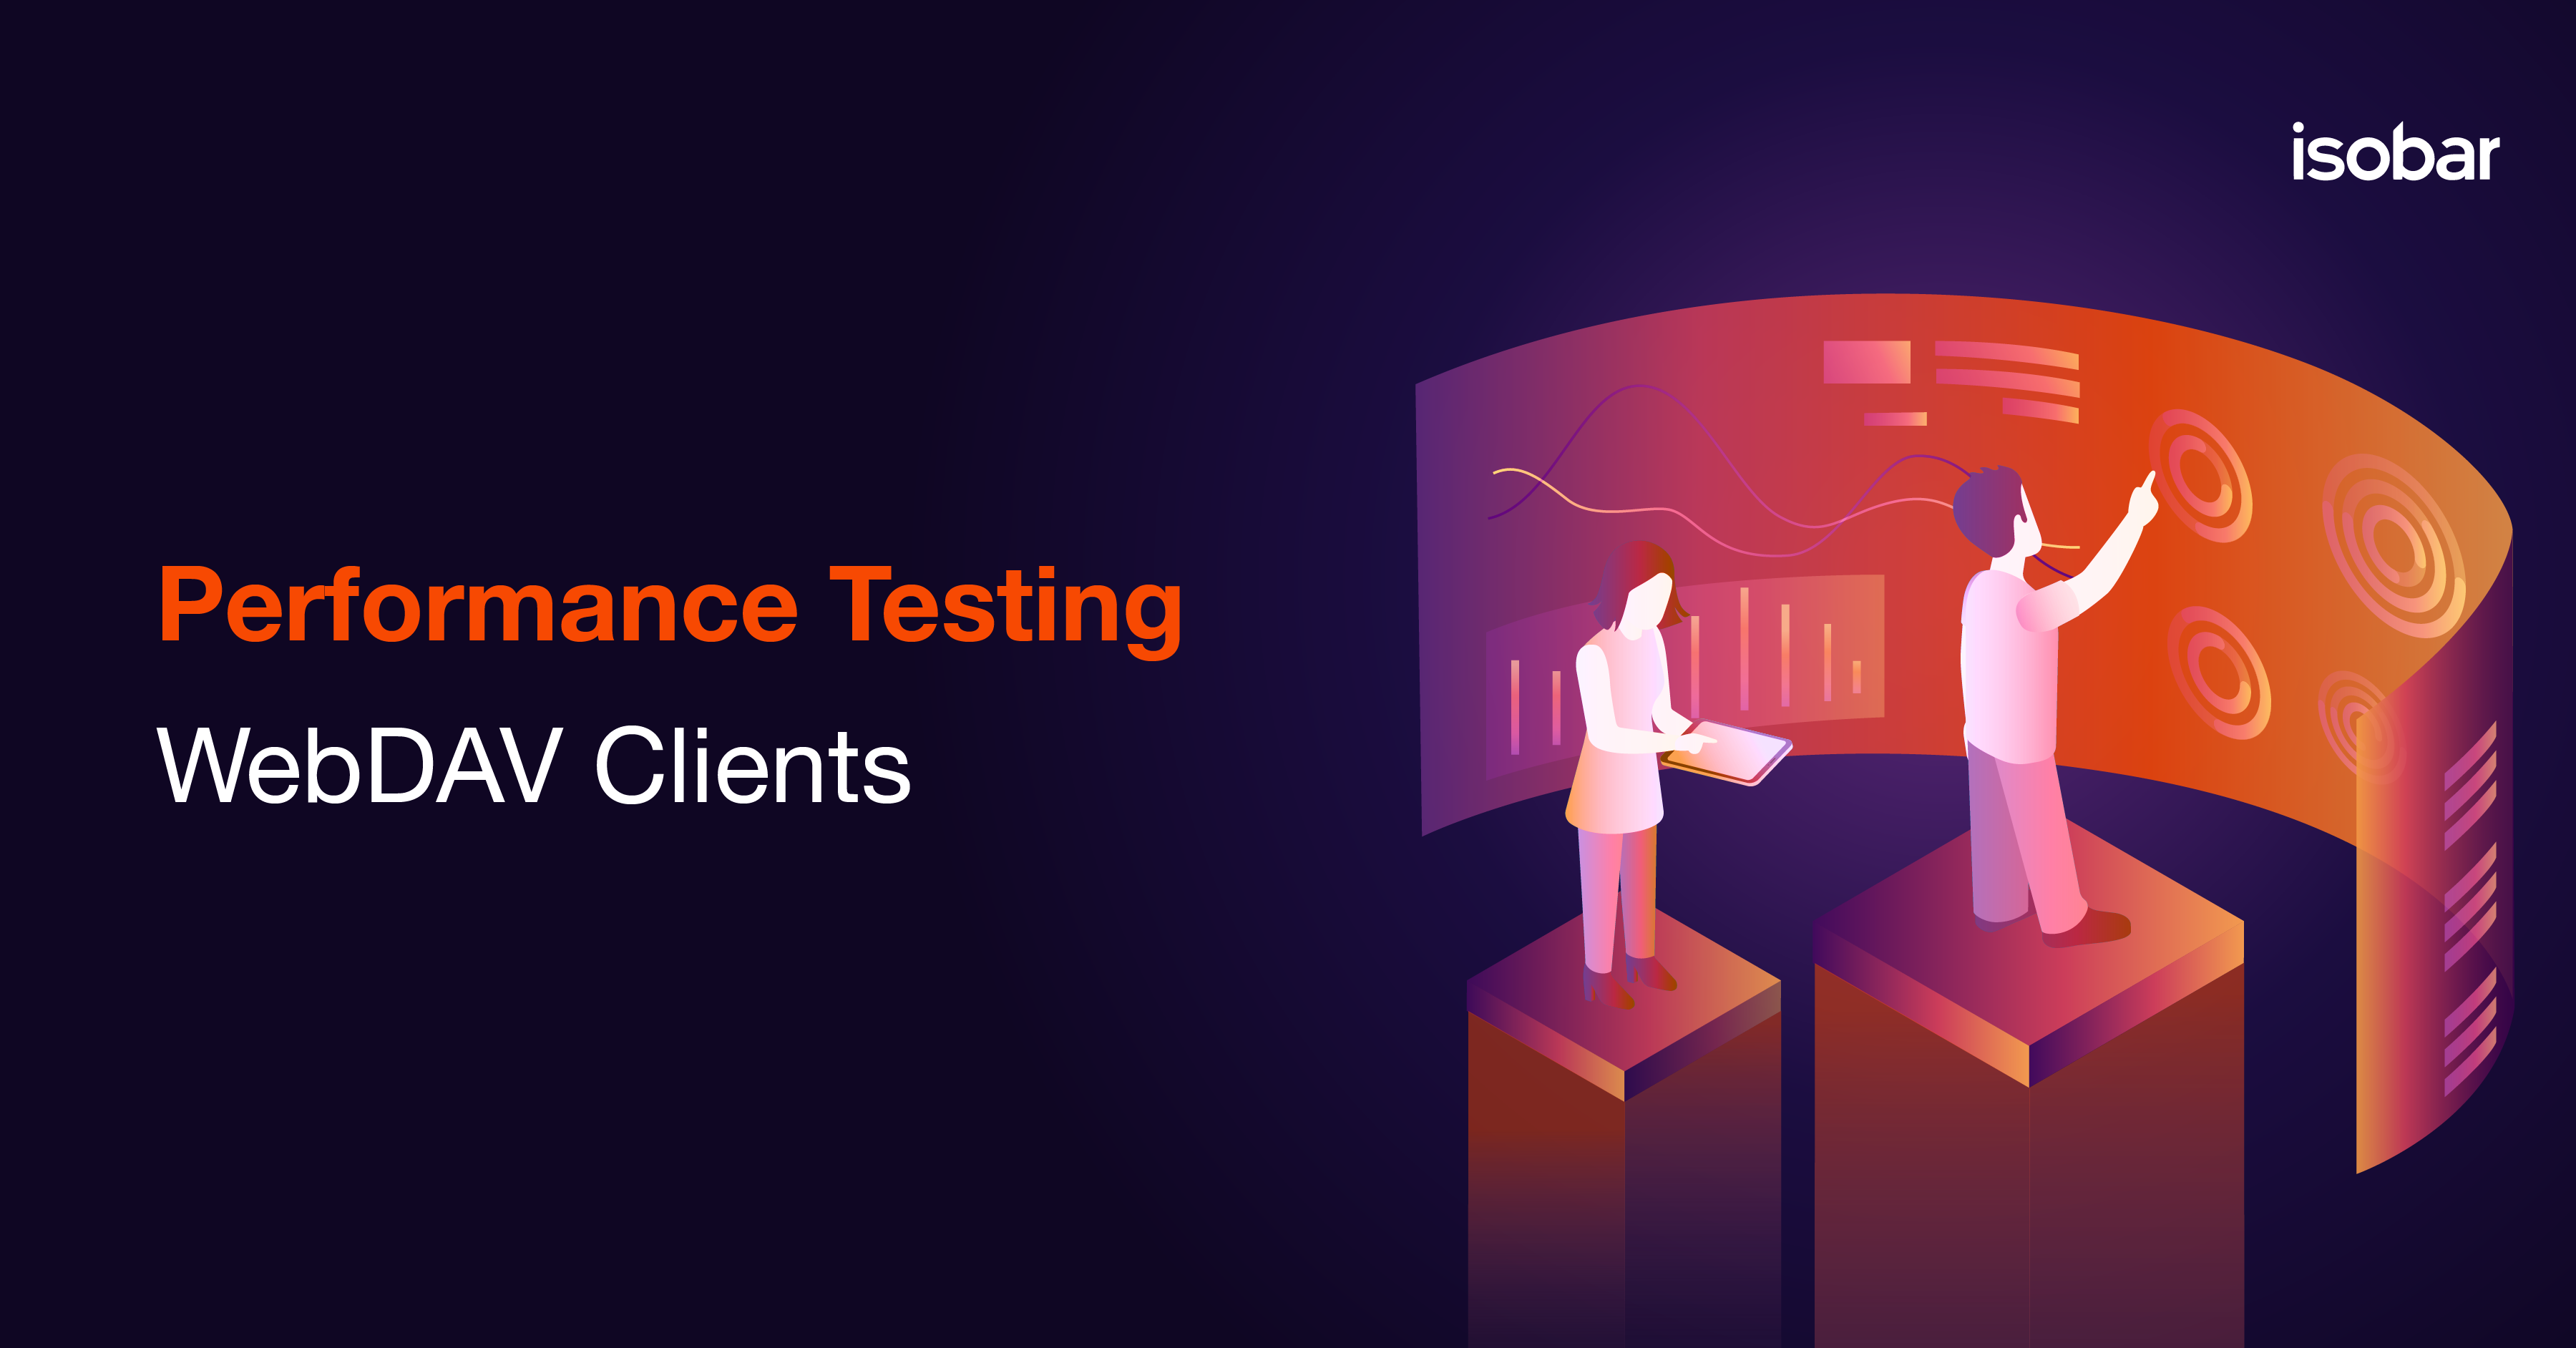 Performance Testing WebDAV Clients - The Squeeze